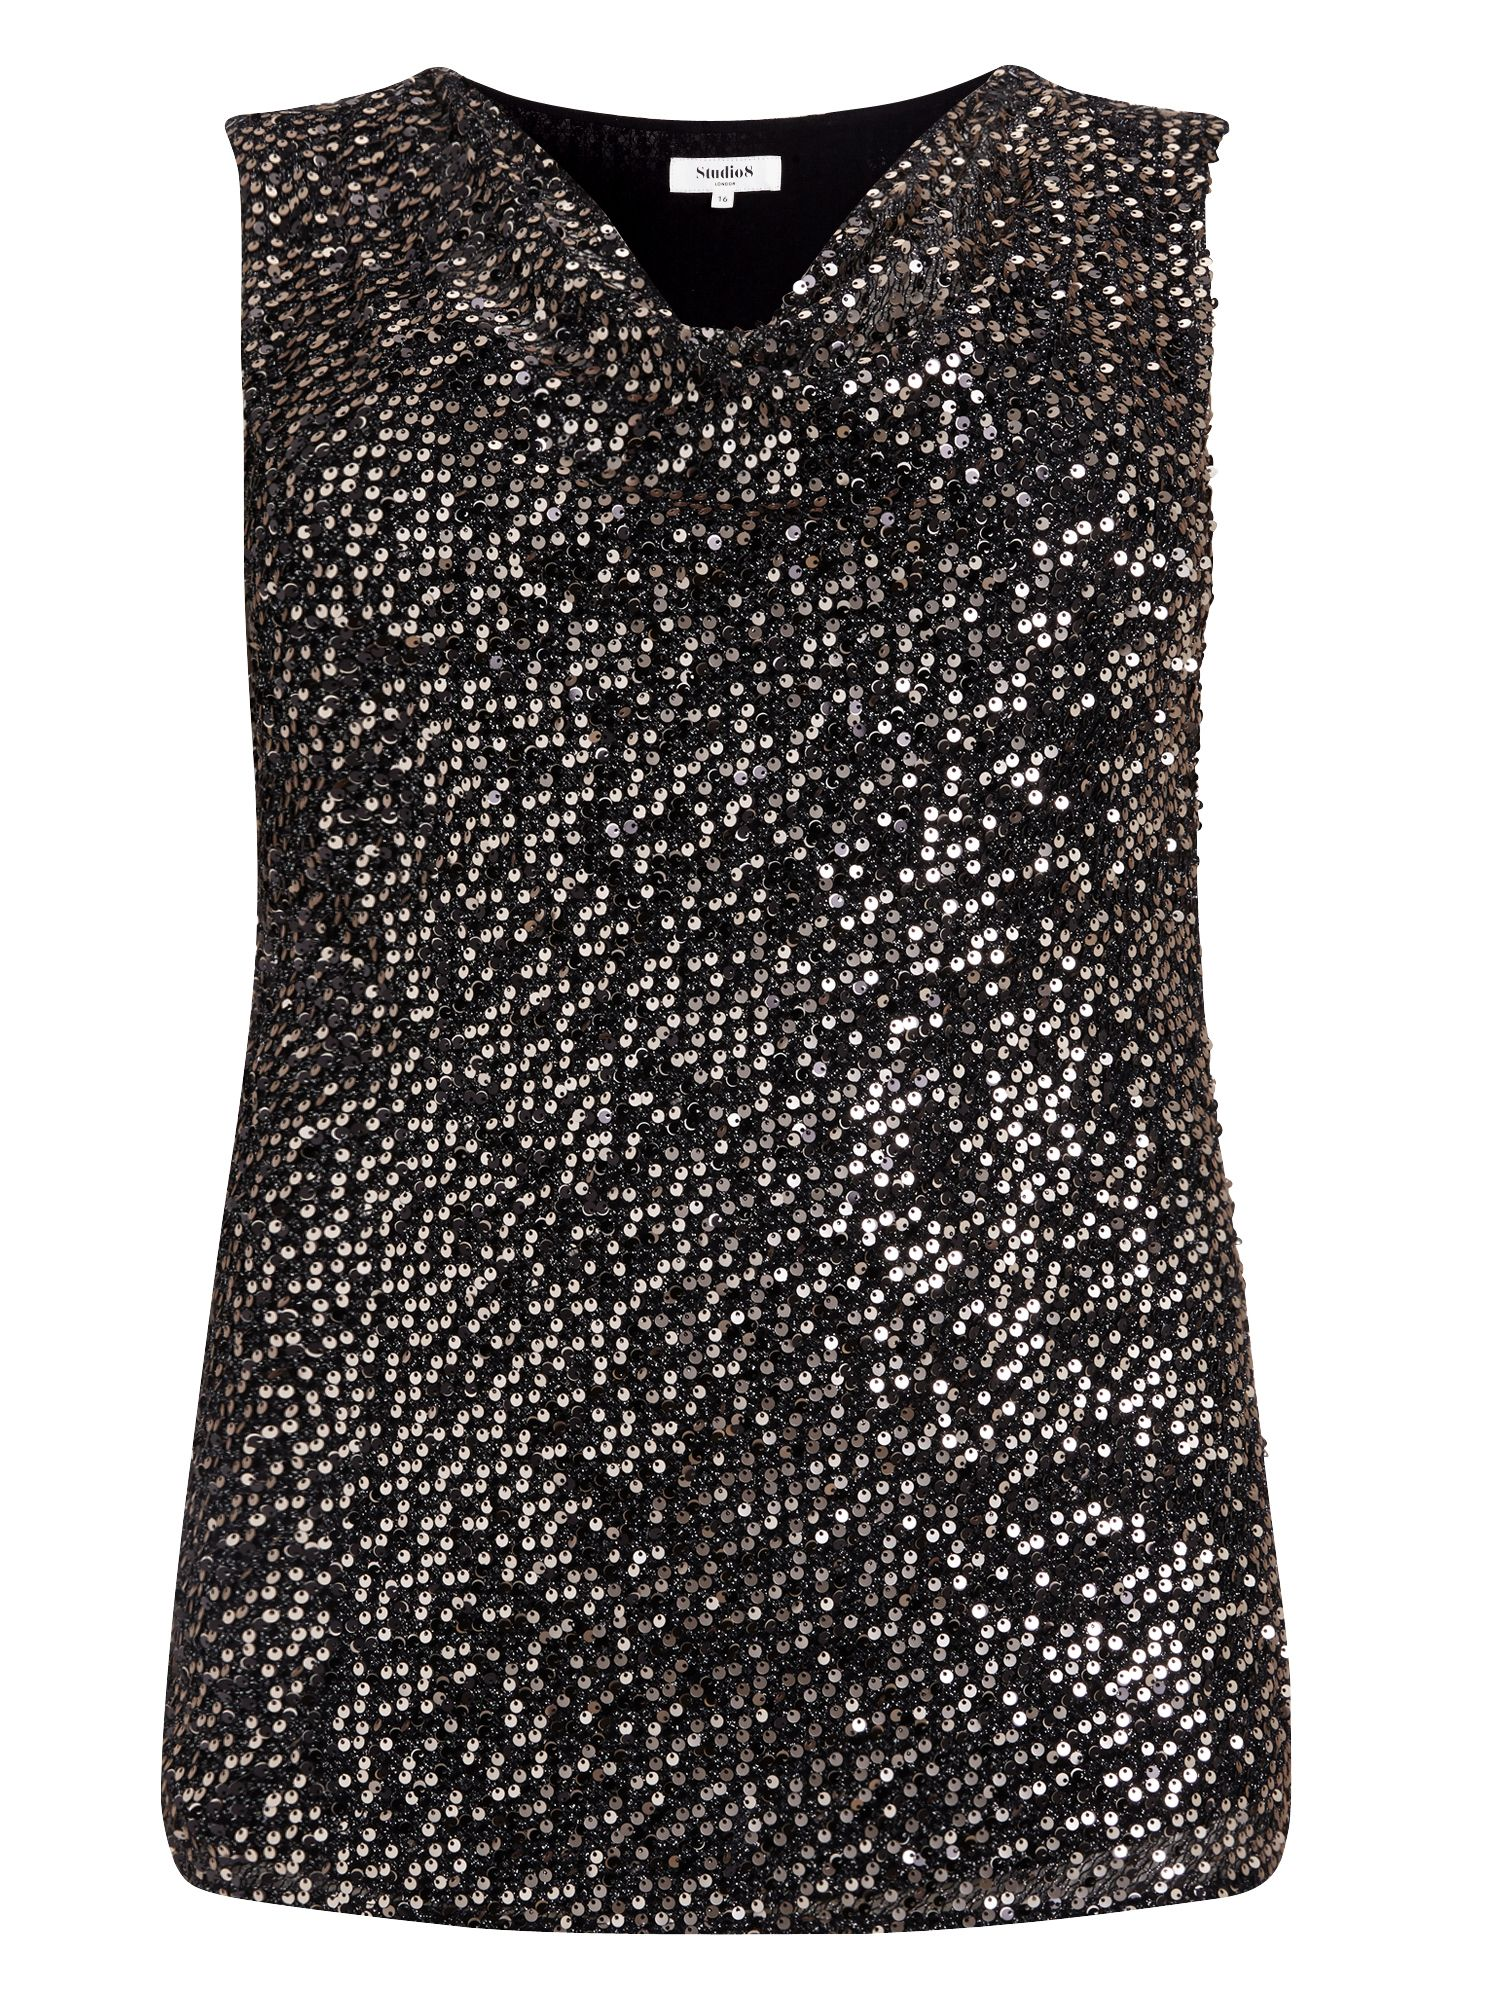 Studio 8 Tyra sequin top, Gold Silverlic